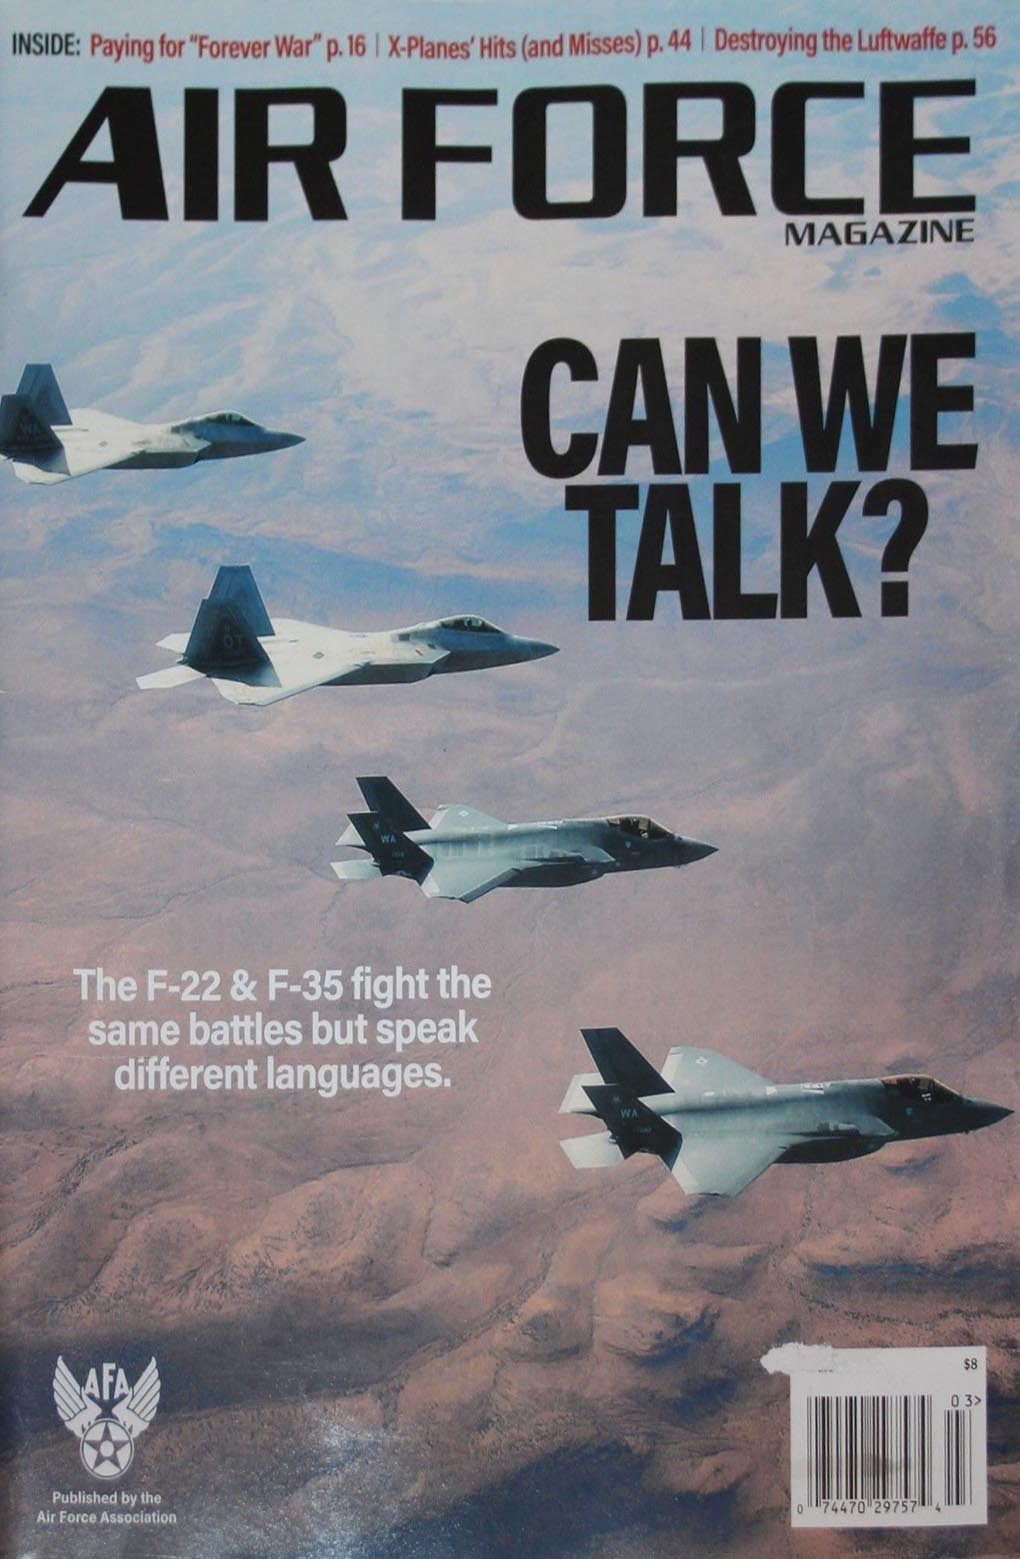 Air Force March 2018 magazine back issue Air Force magizine back copy